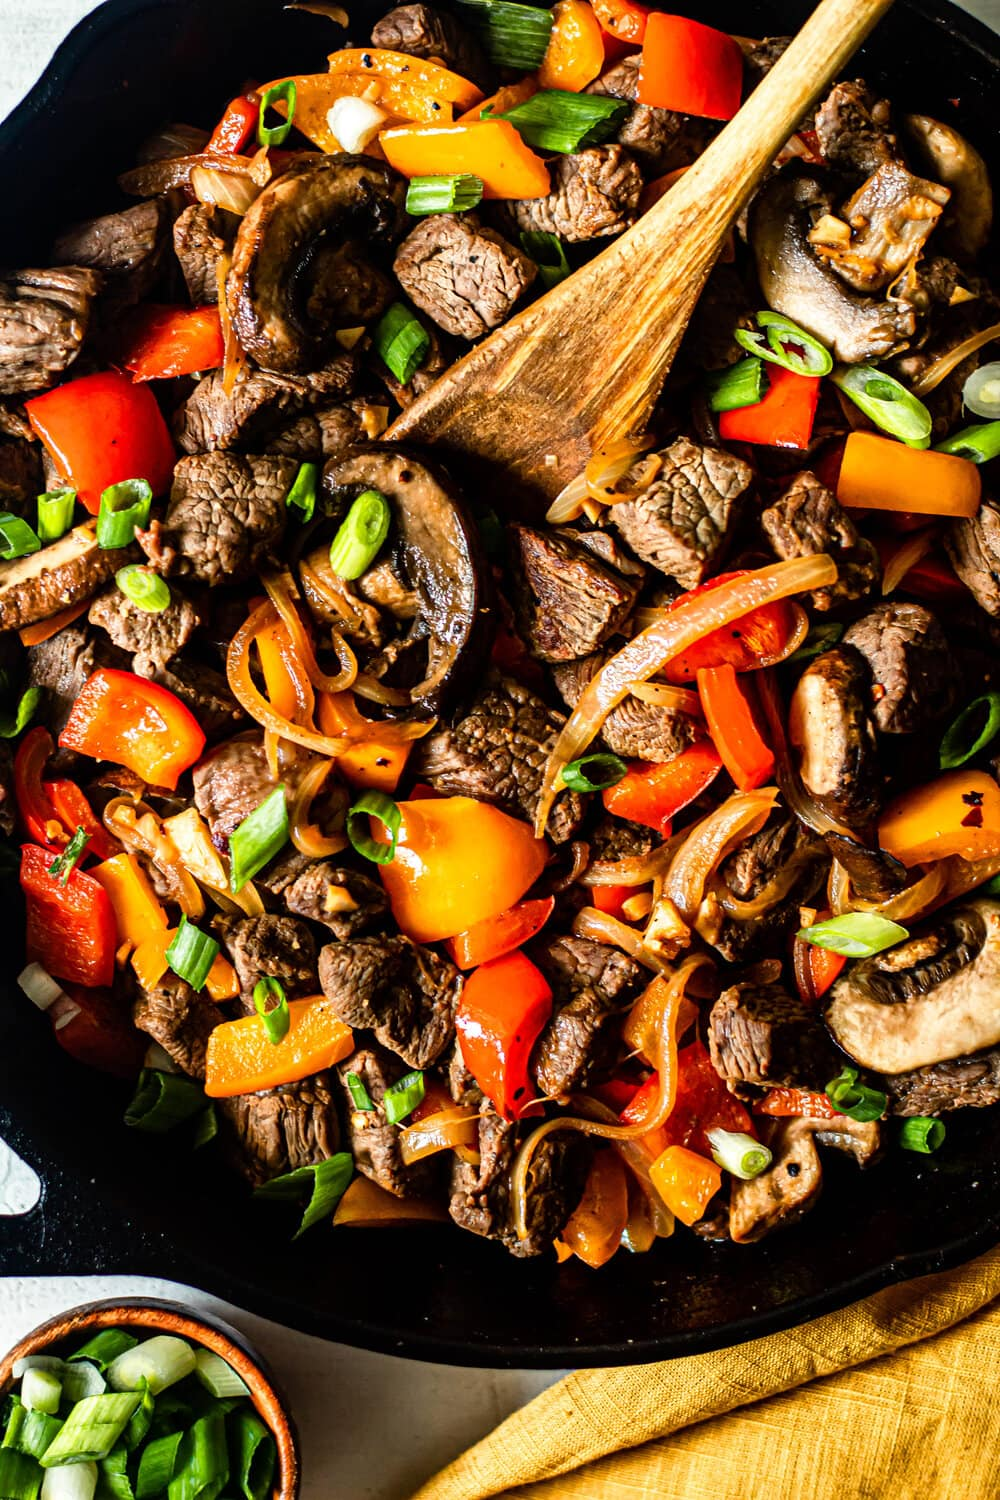 steak, peppers, and mushrooms with a wooden spoon in a cast iron skillet